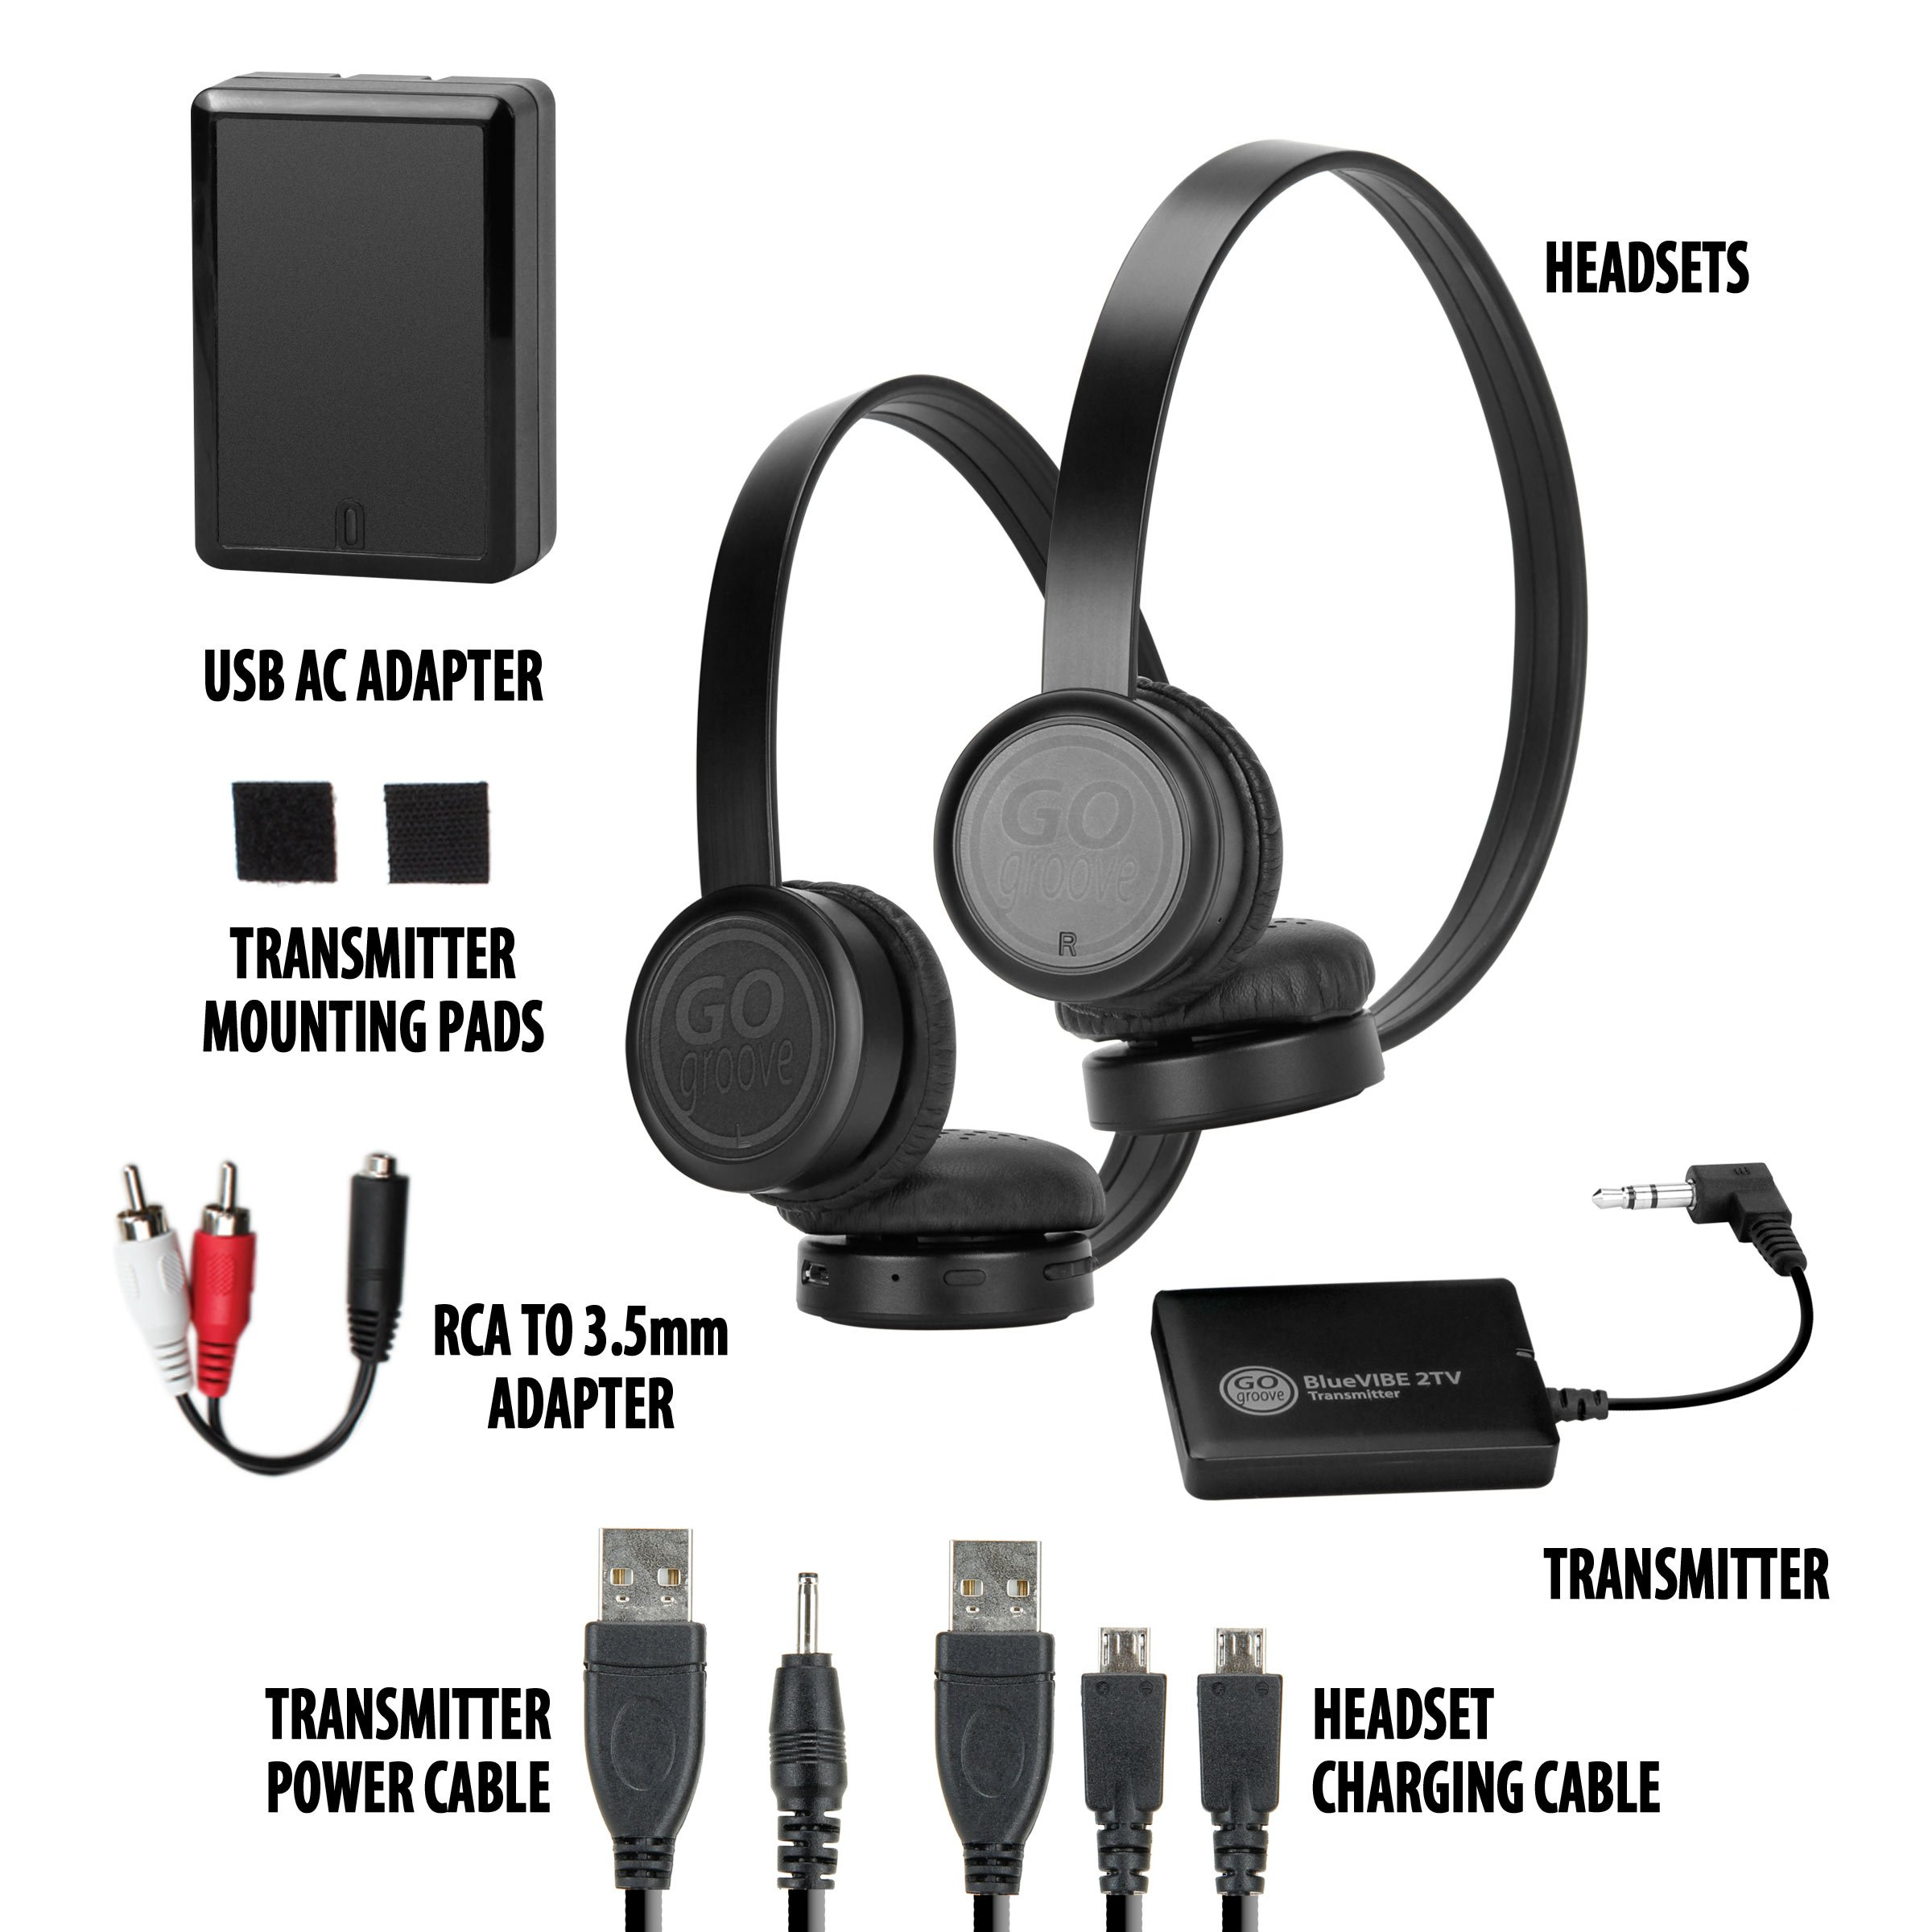 GOgroove BlueVIBE 2 TV Wireless 2 Pair Headphones Television Connection Kit with Plush Lightweight Ear Cups , Bluetooth Transmitter and Easy Setup - Great for Tablet Sharing by Apple, Samsung and More by GOgroove (Image #7)